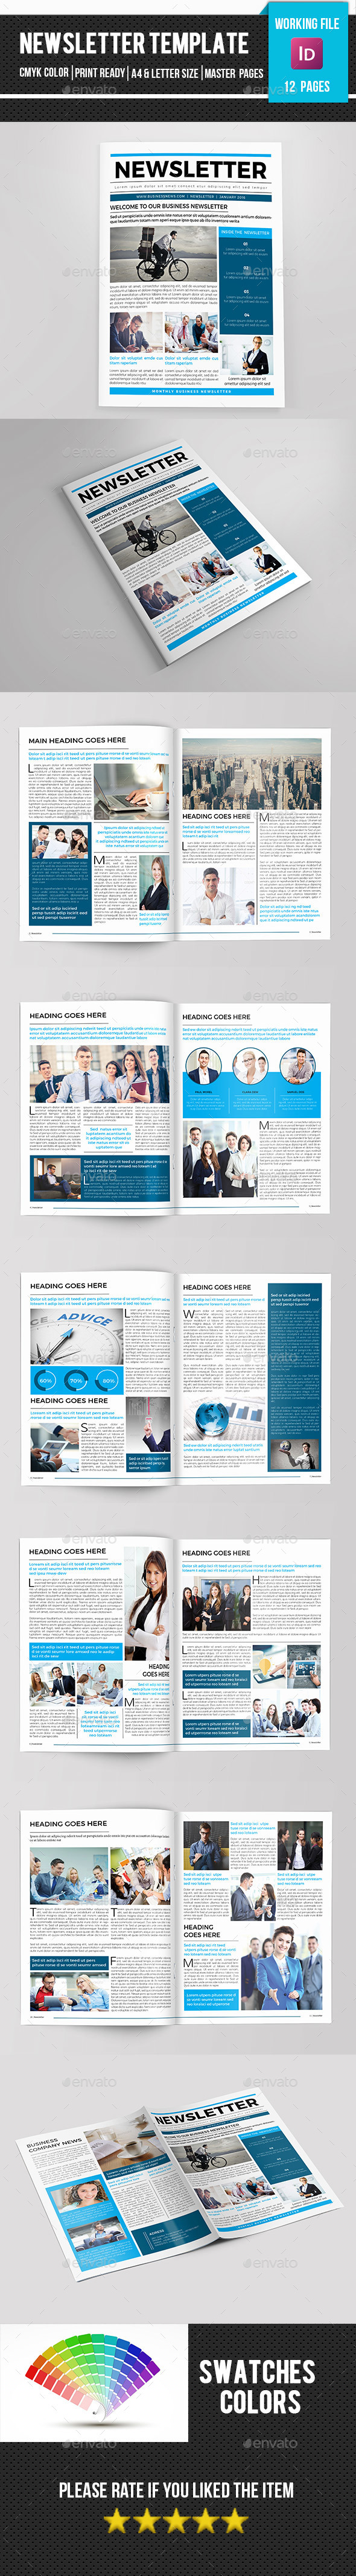 Corporate Newsletter-V08 - Newsletters Print Templates